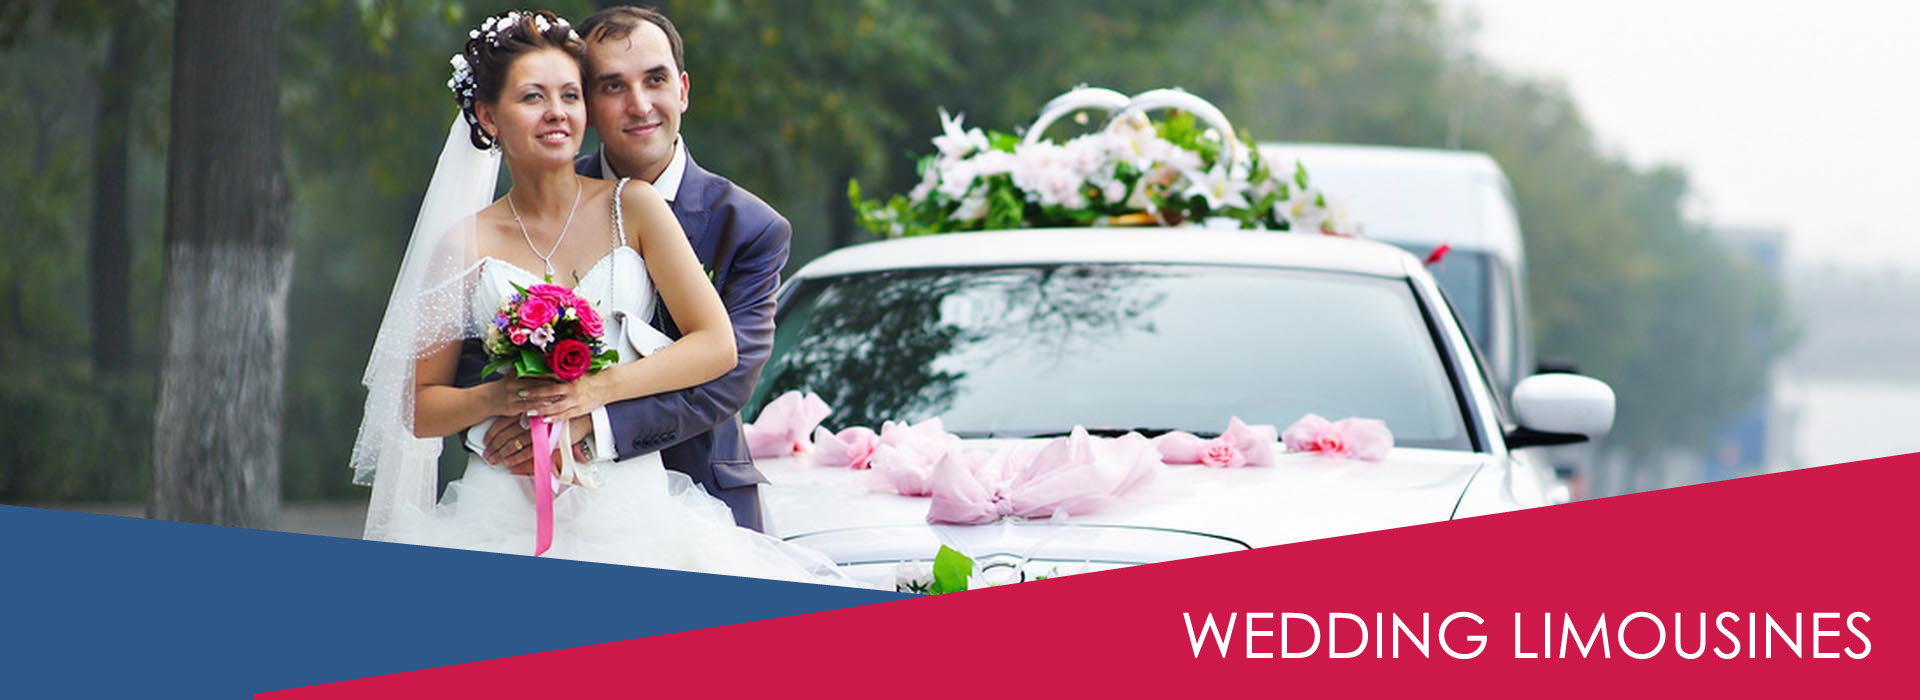 wedding limousines las vegas